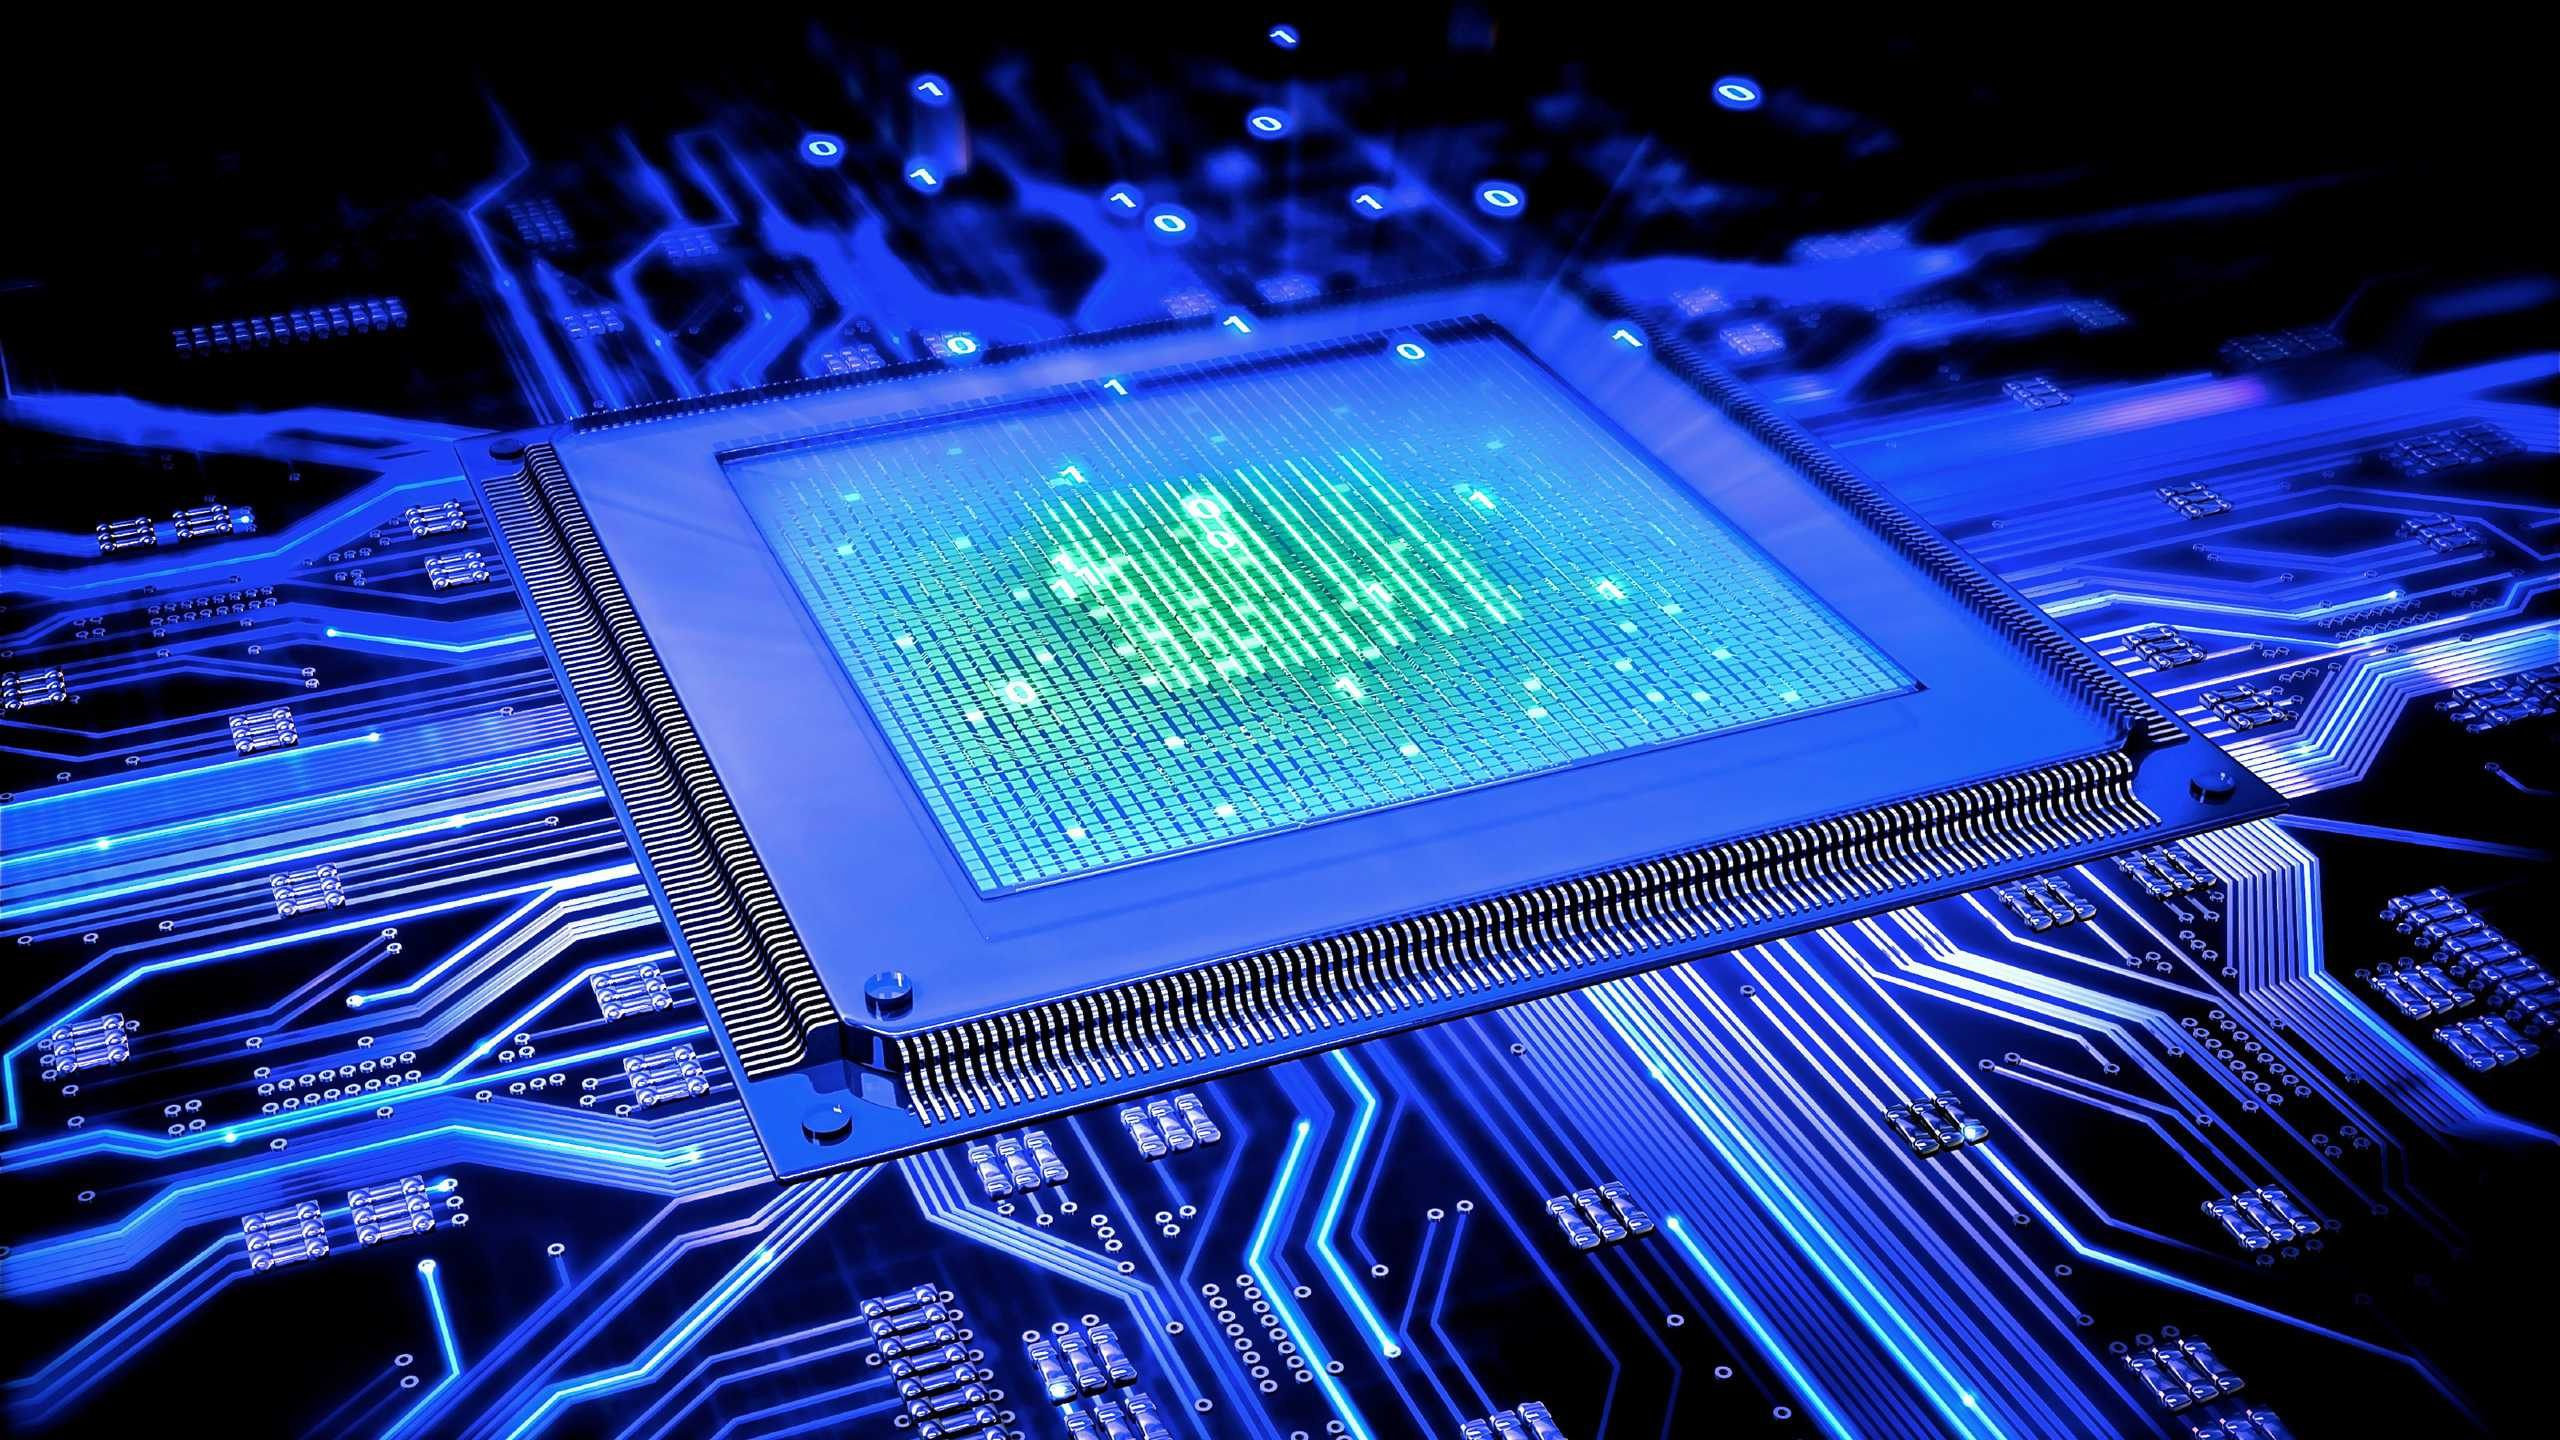 Cardano is Working on a Microchip That Would Give Crypto a Cash-like Experience